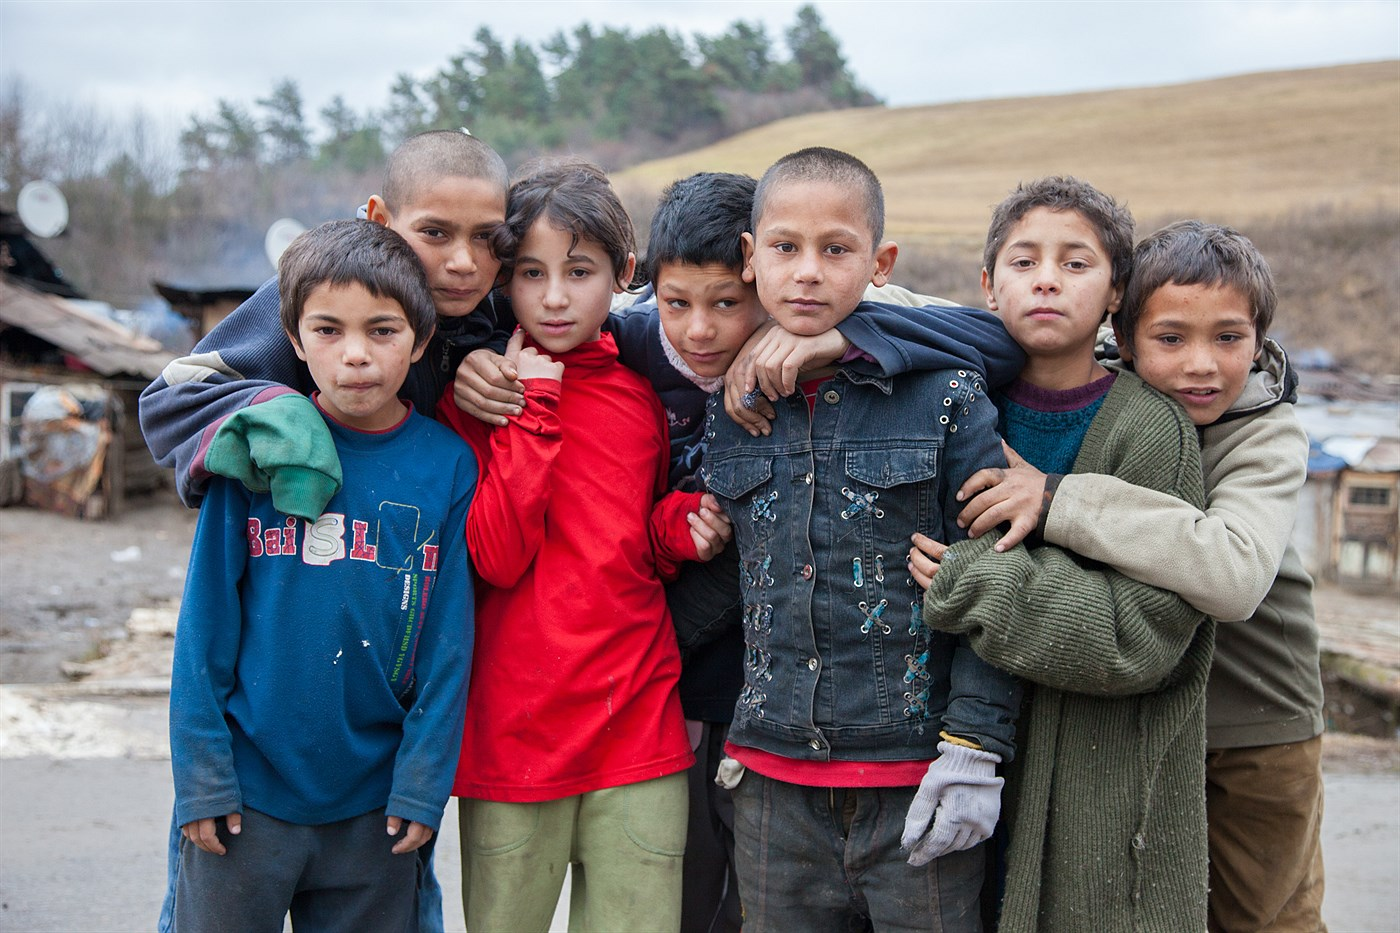 Gypsy Children, photo